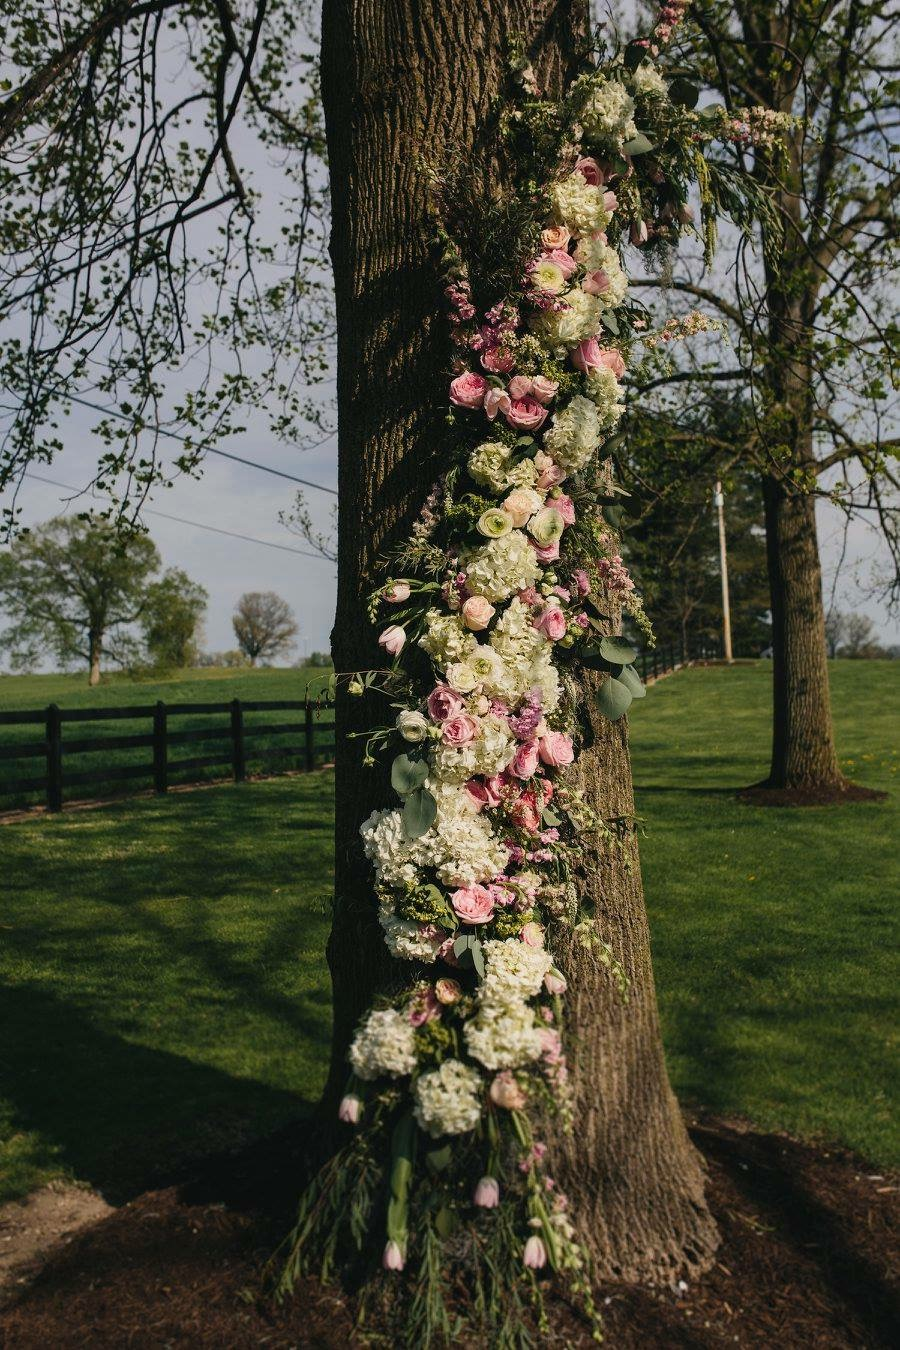 Floral tree designed by Westvirjeni for the ceremony site